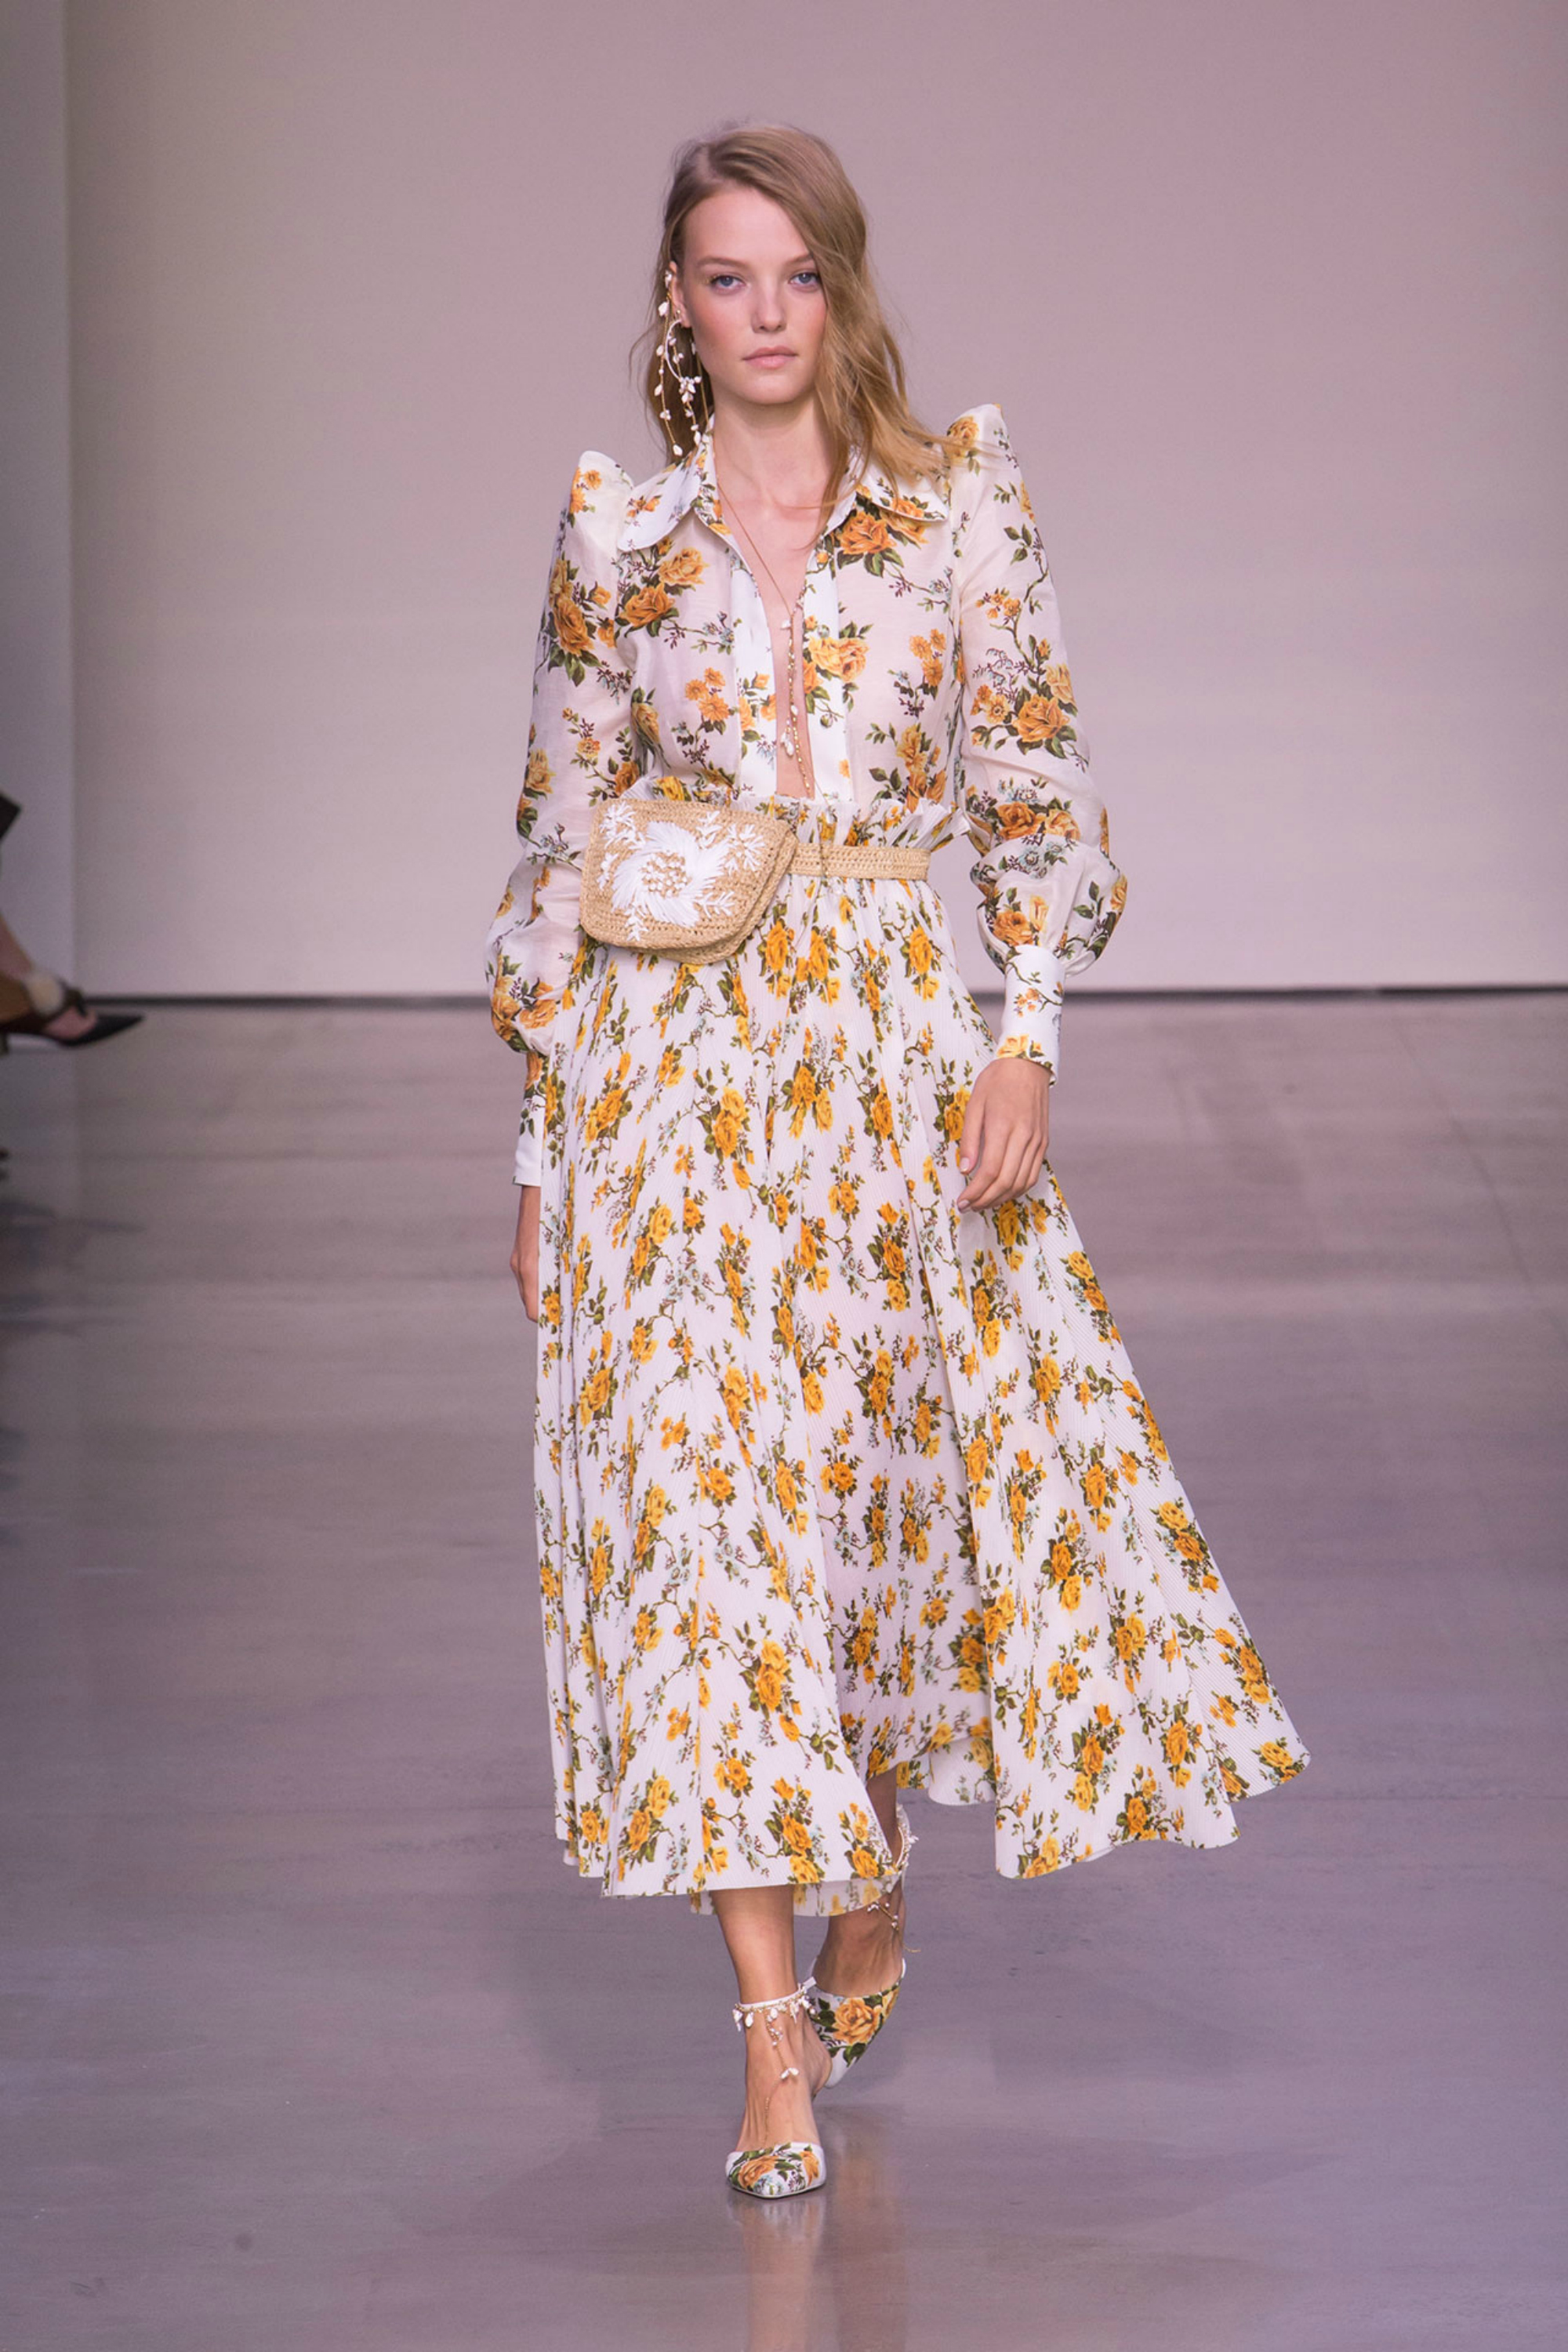 7 Spring Trends You Can Actually Wear